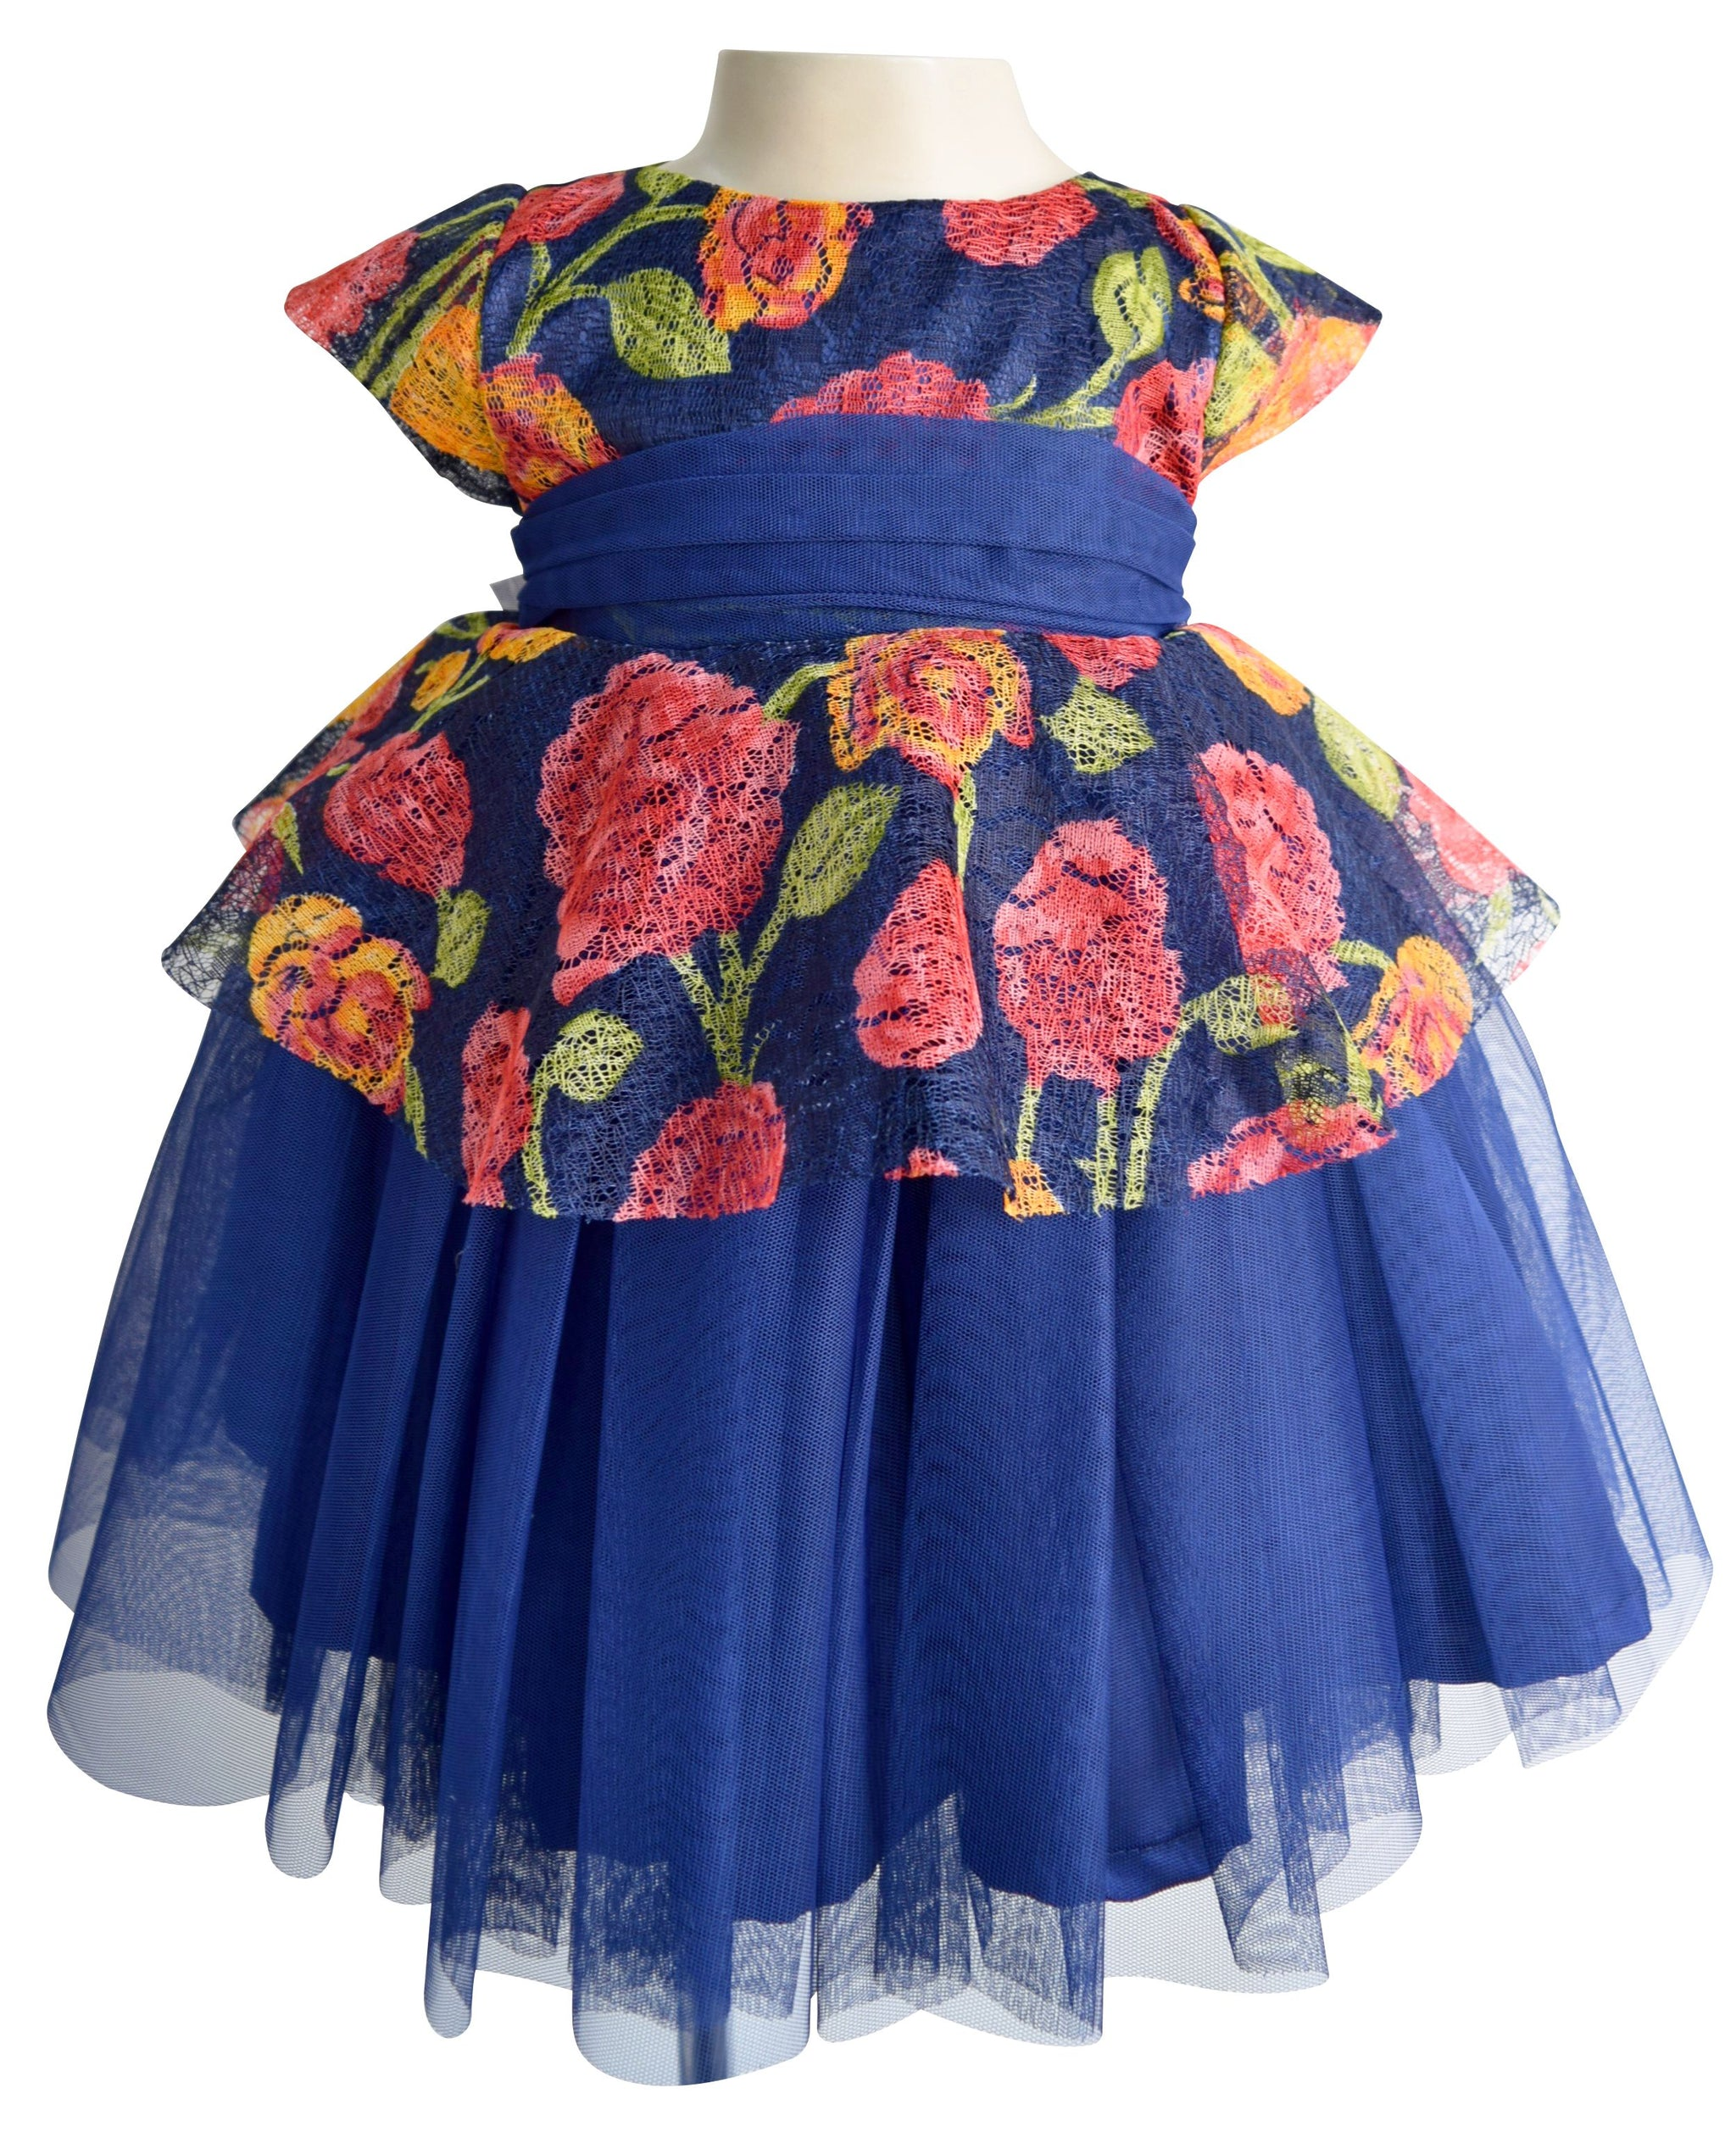 5019239d Buy Girls party wear dresses online|birthday dresses|dresses for girls